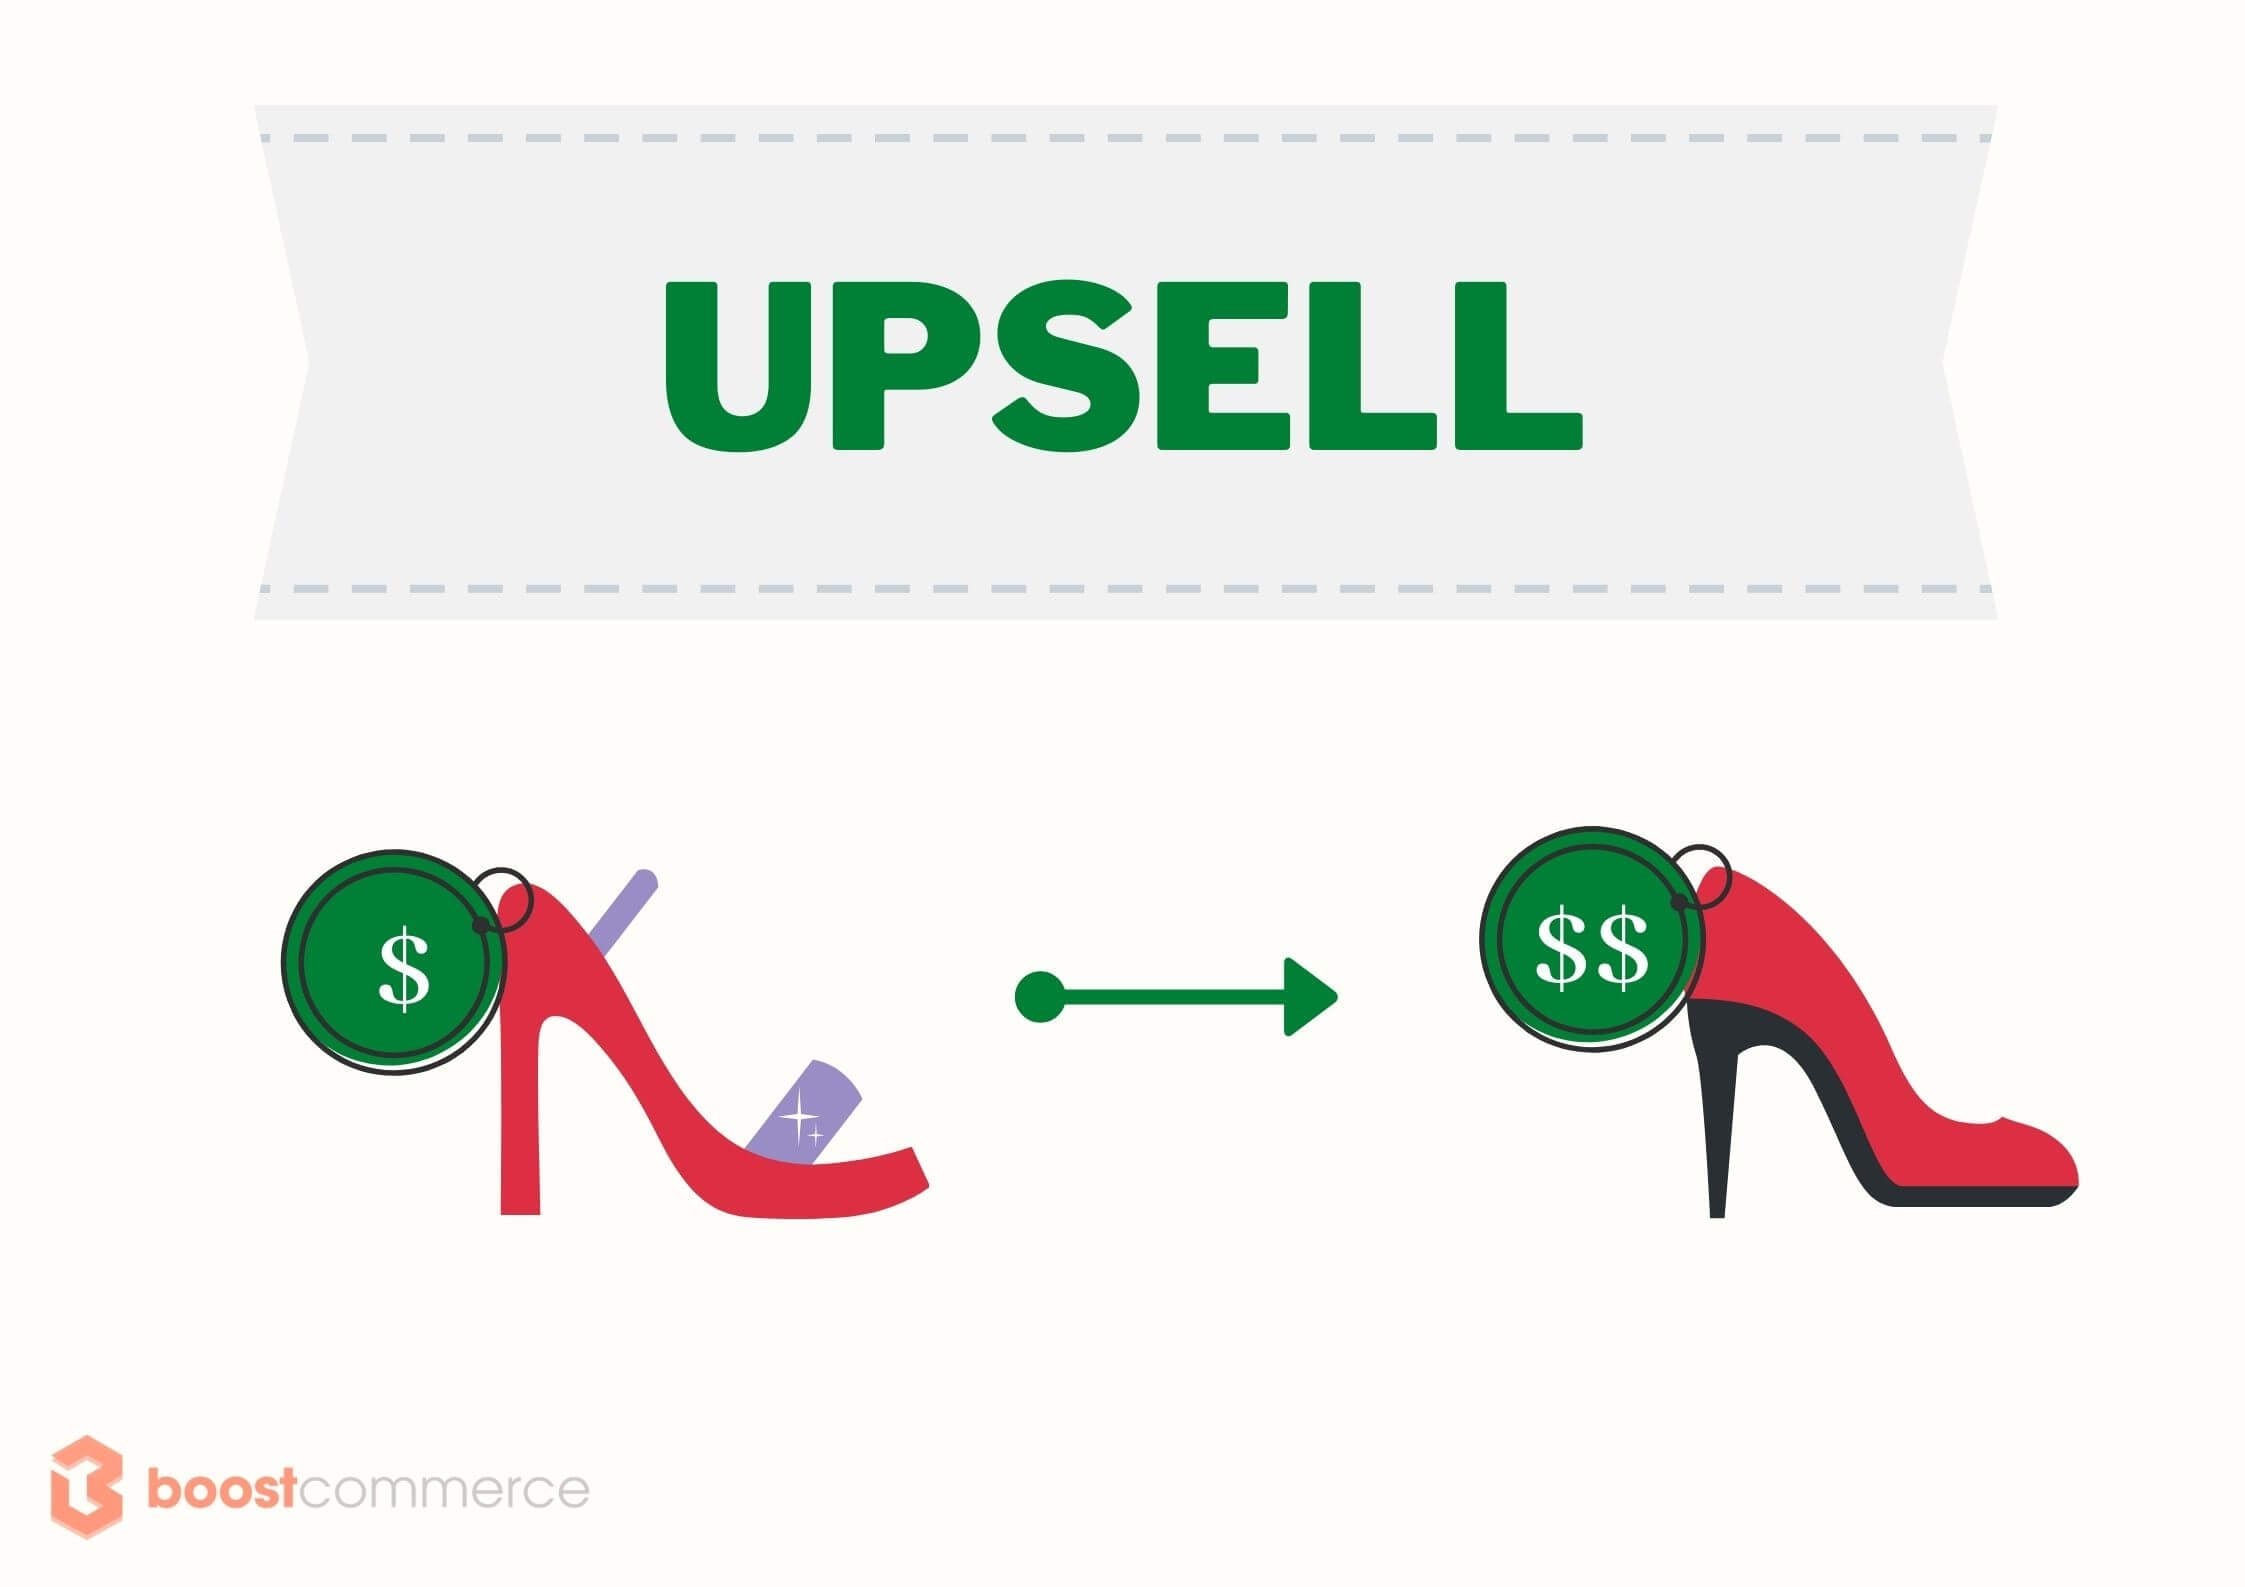 upsell boost definition commerce